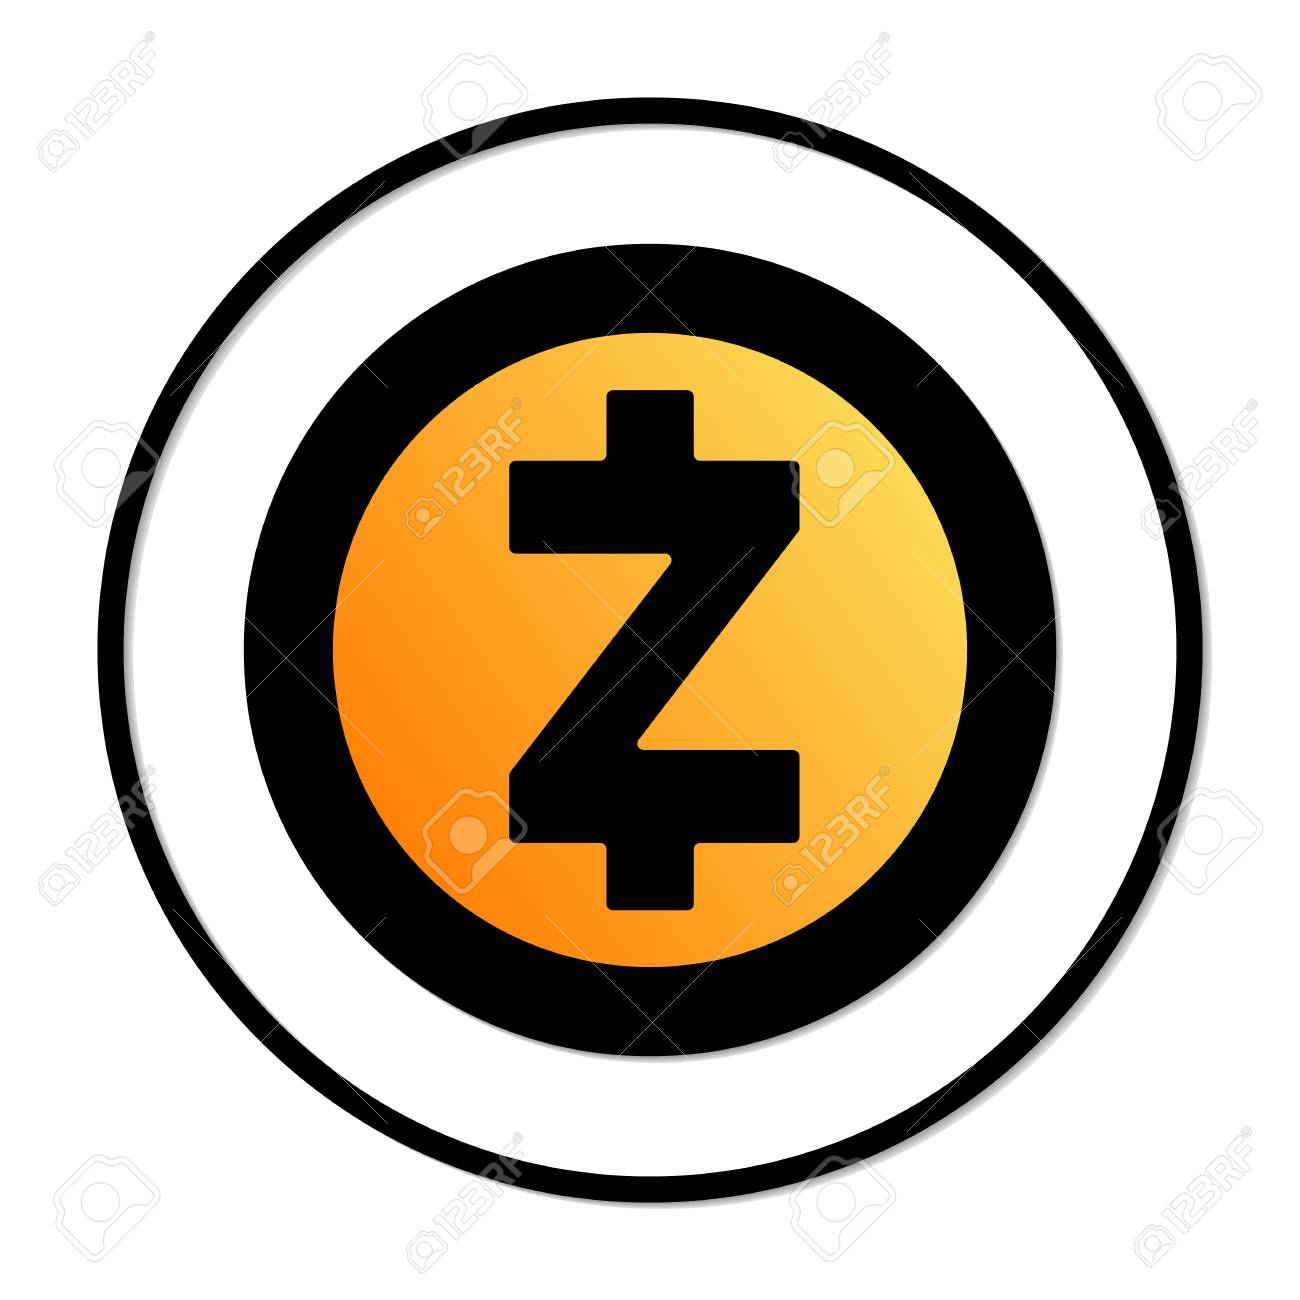 Zcash Sign Icon Illustration Stock Vector